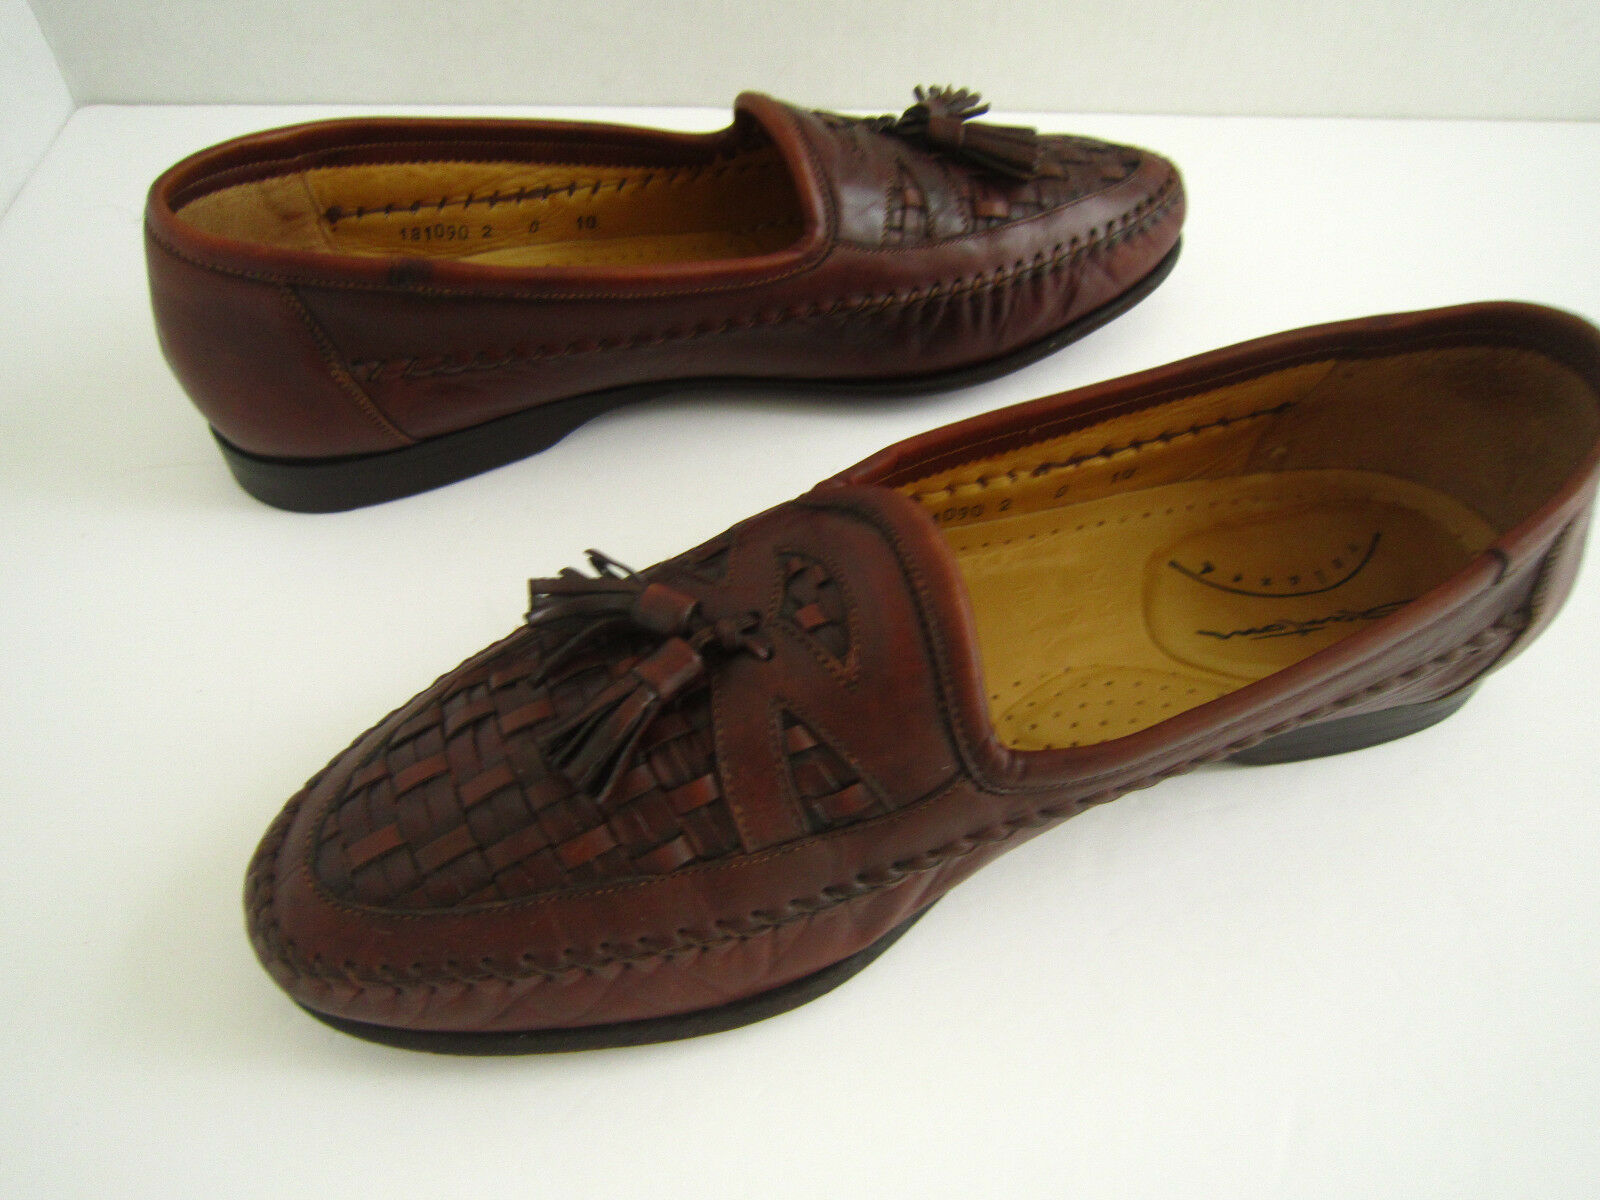 Santoni Relaxsed  Mens Loafers Brown Woven Toe Tassel  All Leather  Sz 10 D